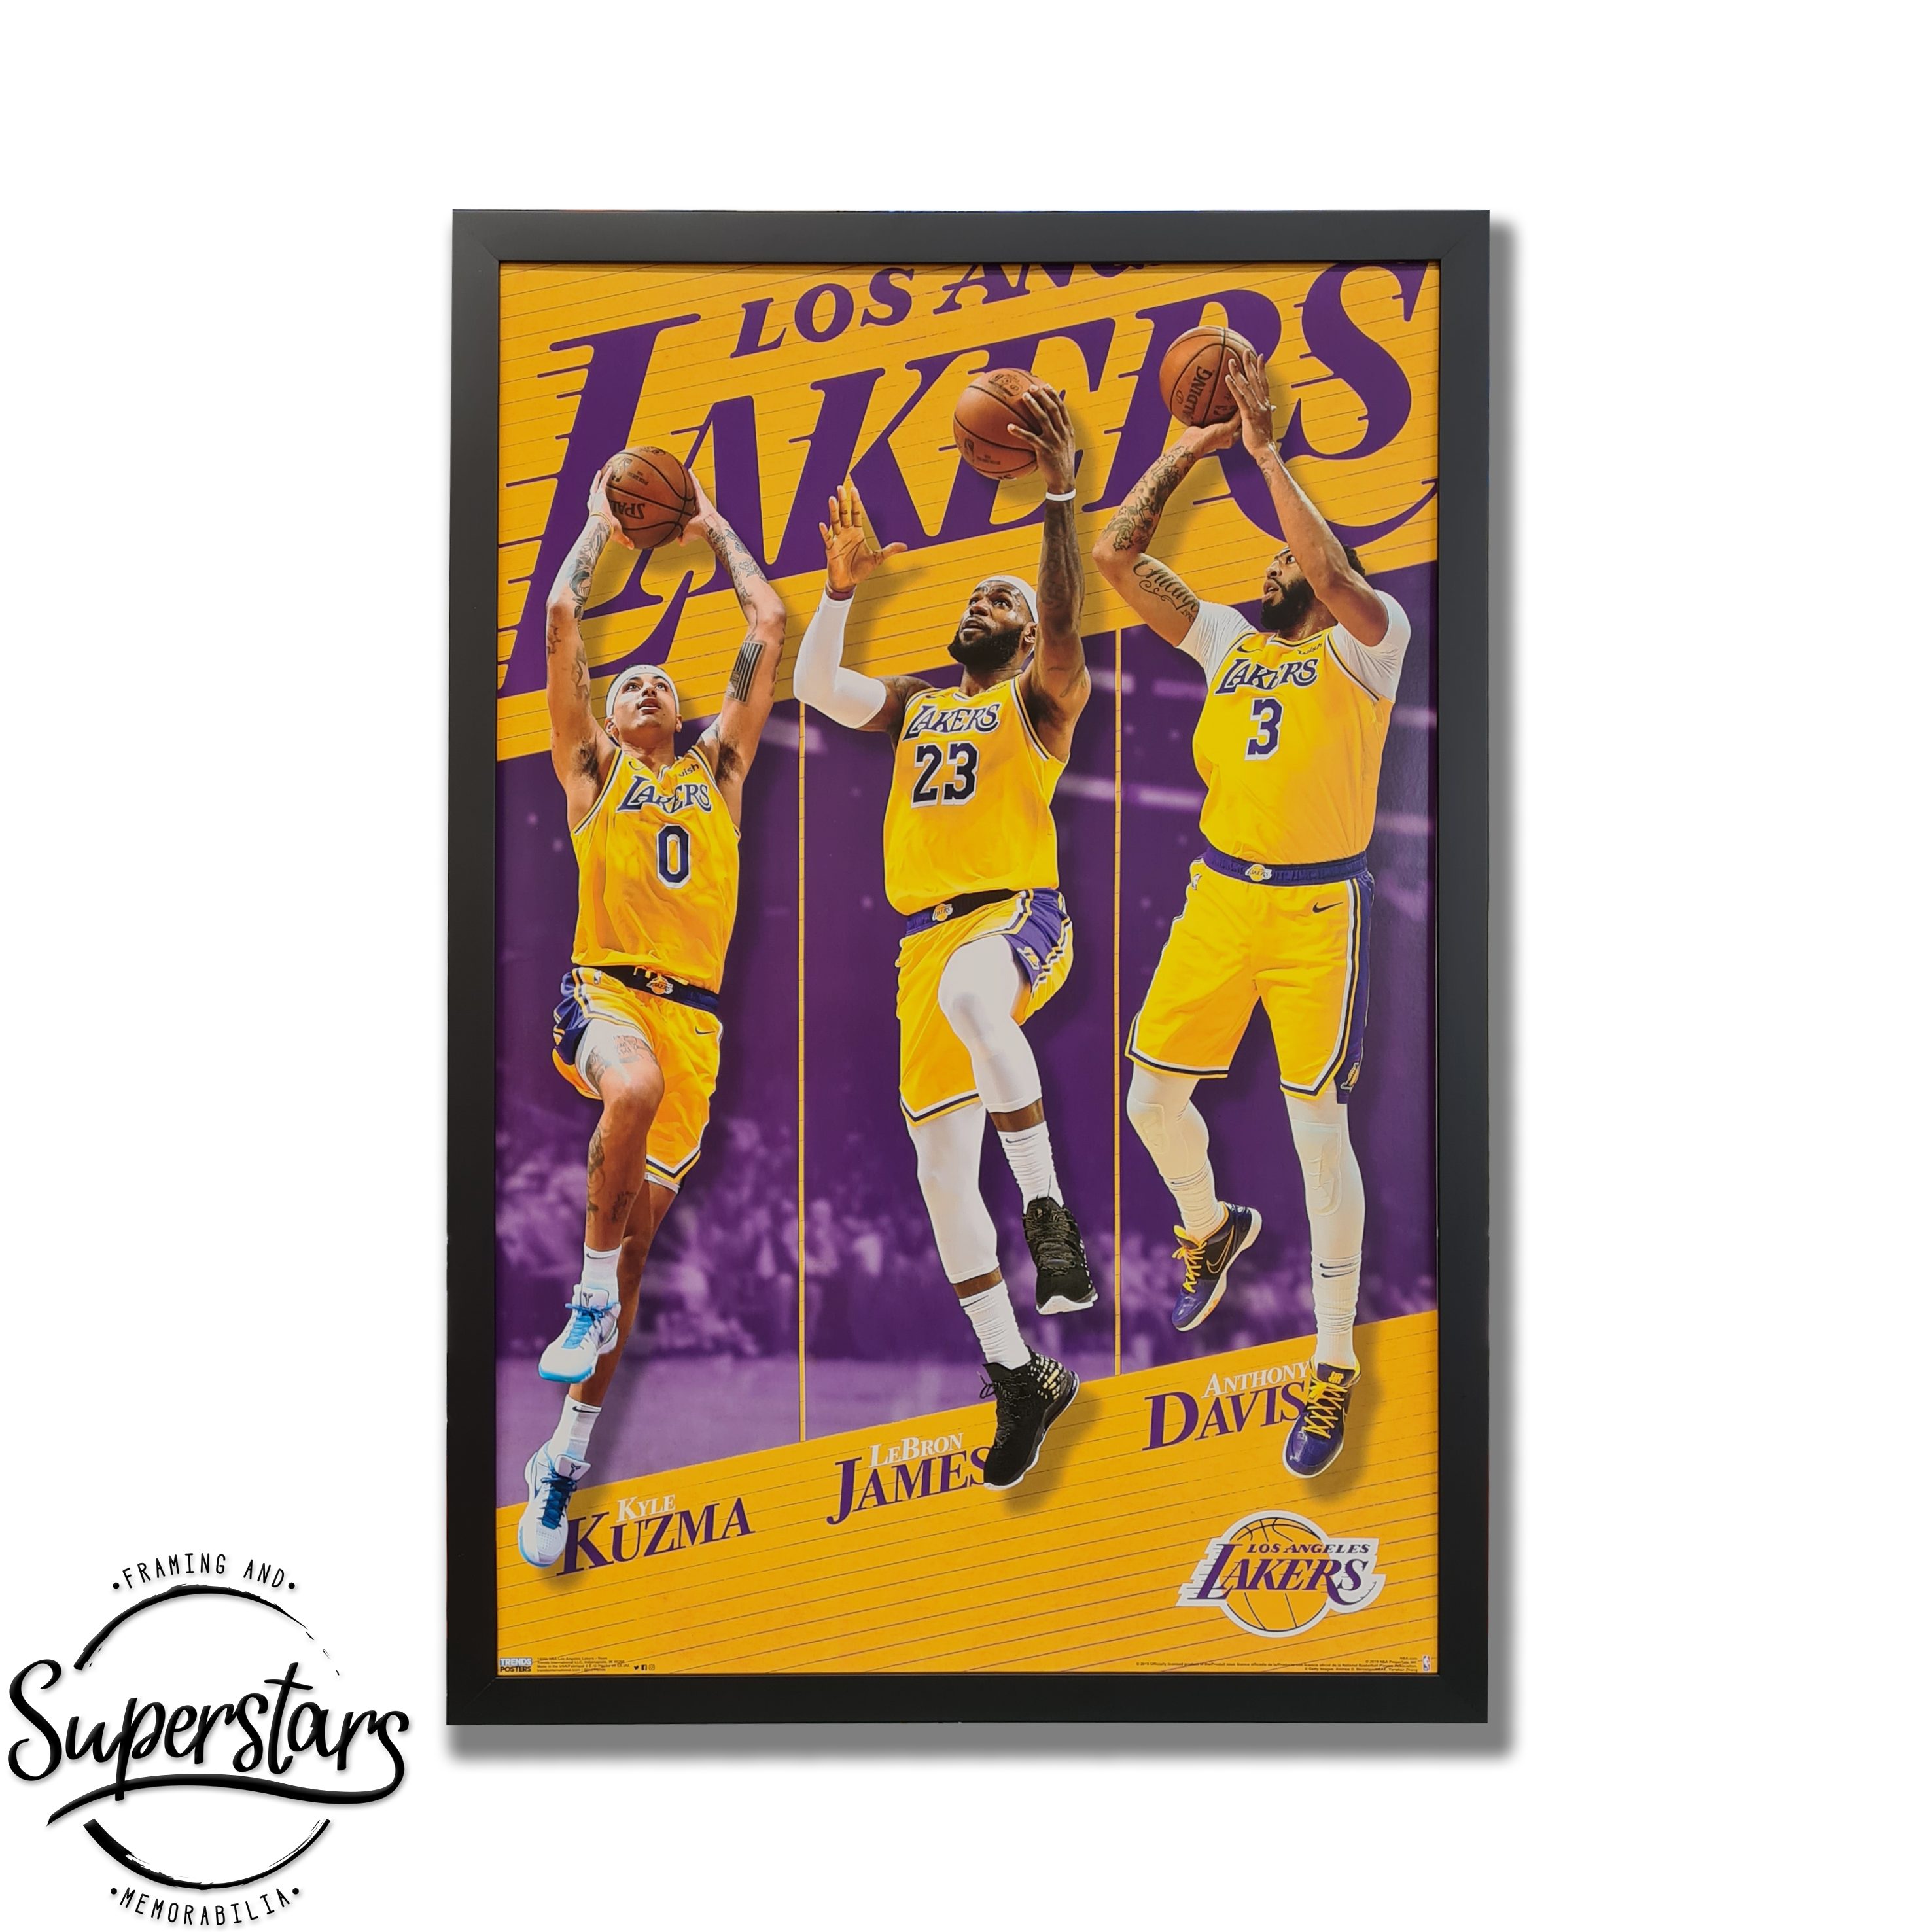 A poster with photos of Lebron James, Kyle Kuzma and Anthony Davis from the LA Lakers.